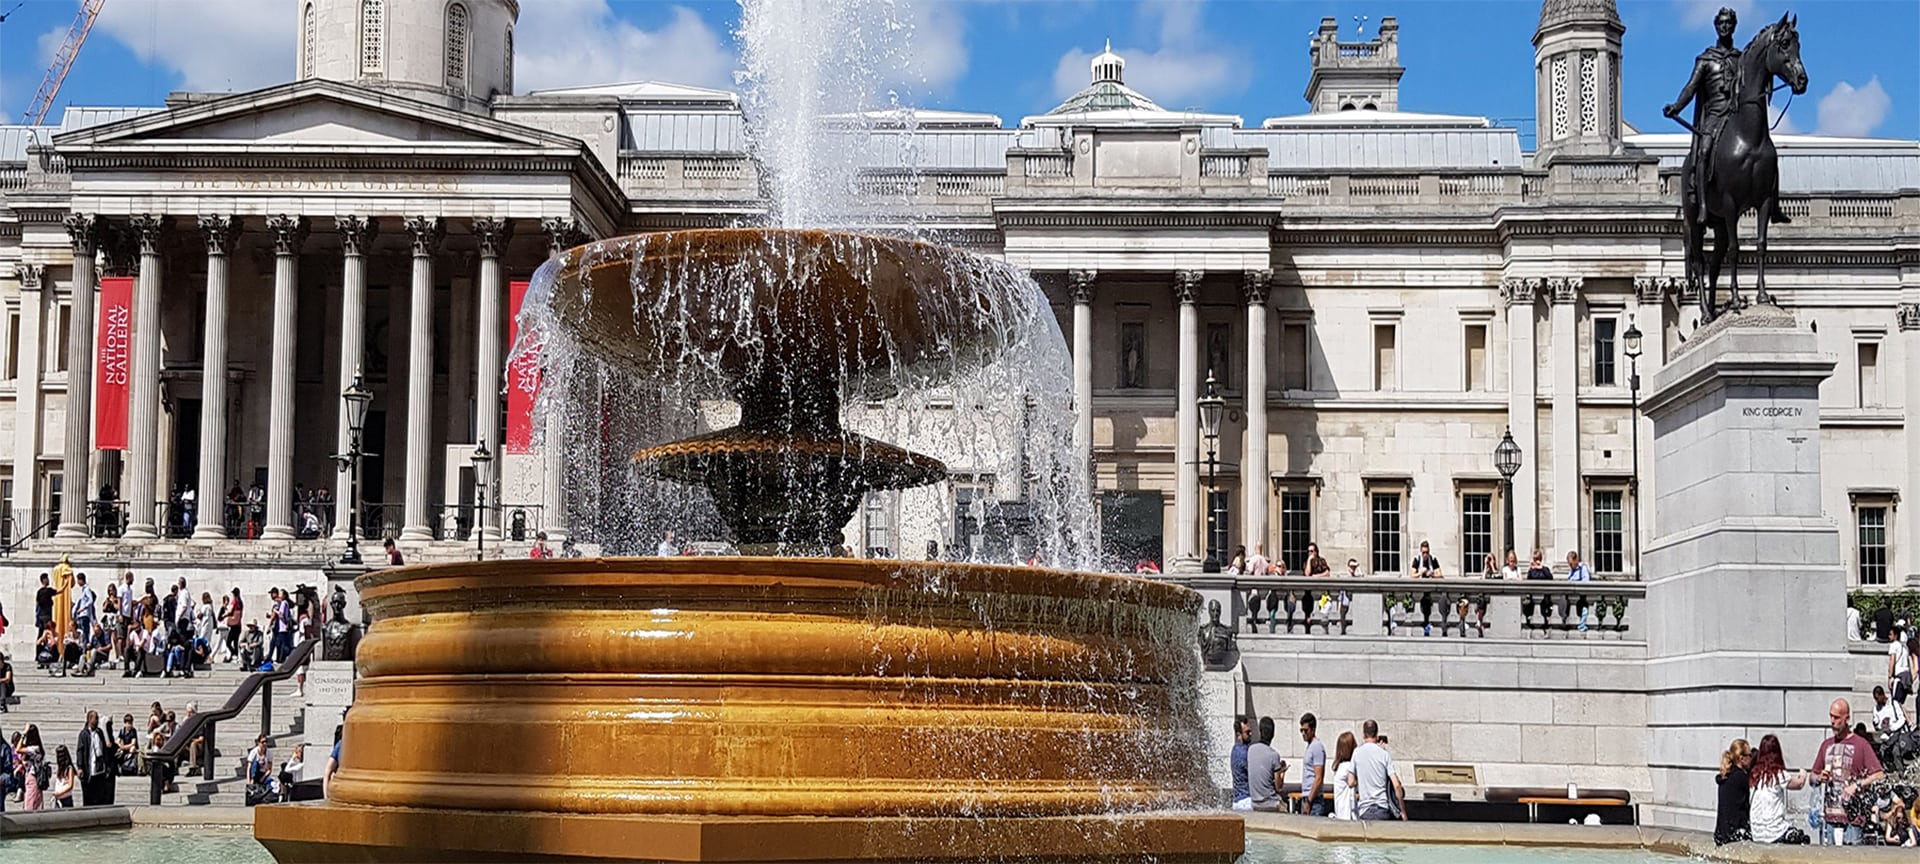 As well as being one of the most recognisable movie locations in the world, Trafalgar Square has plenty of photo opportunities. There's plenty to see in Trafalgar Square including Nelson's Column, the Trafalgar Square Lions, two fountains, various statues, the Trafalgar Square Police Box which was the smallest police station in London, The National Gallery and the Portrait Gallery